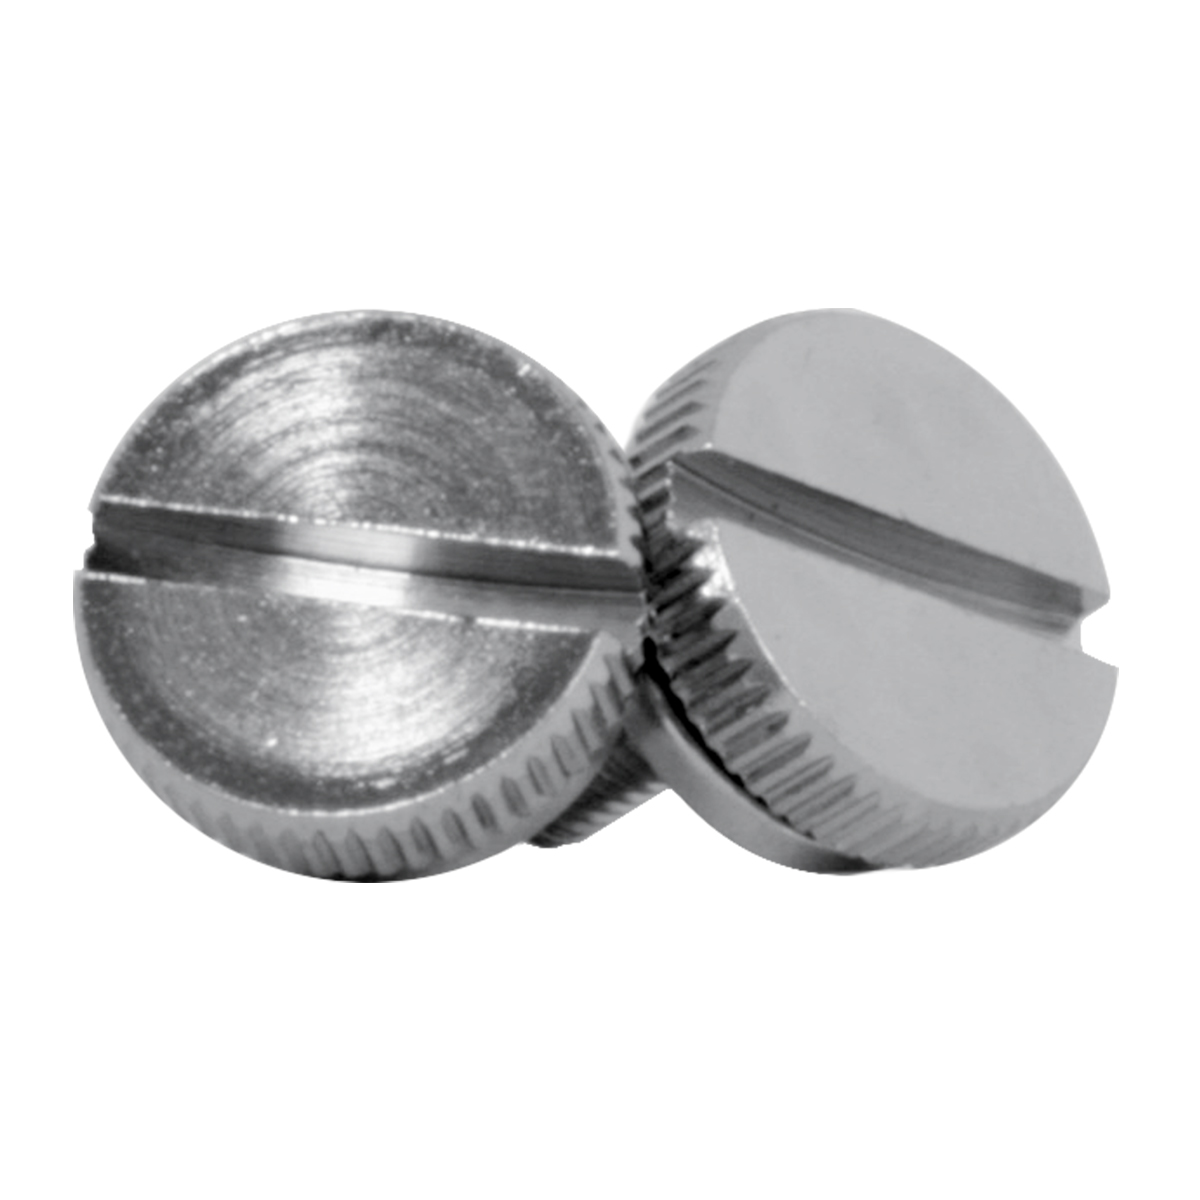 Chrome Plated Steel 4mm C.B. Screw Knobs